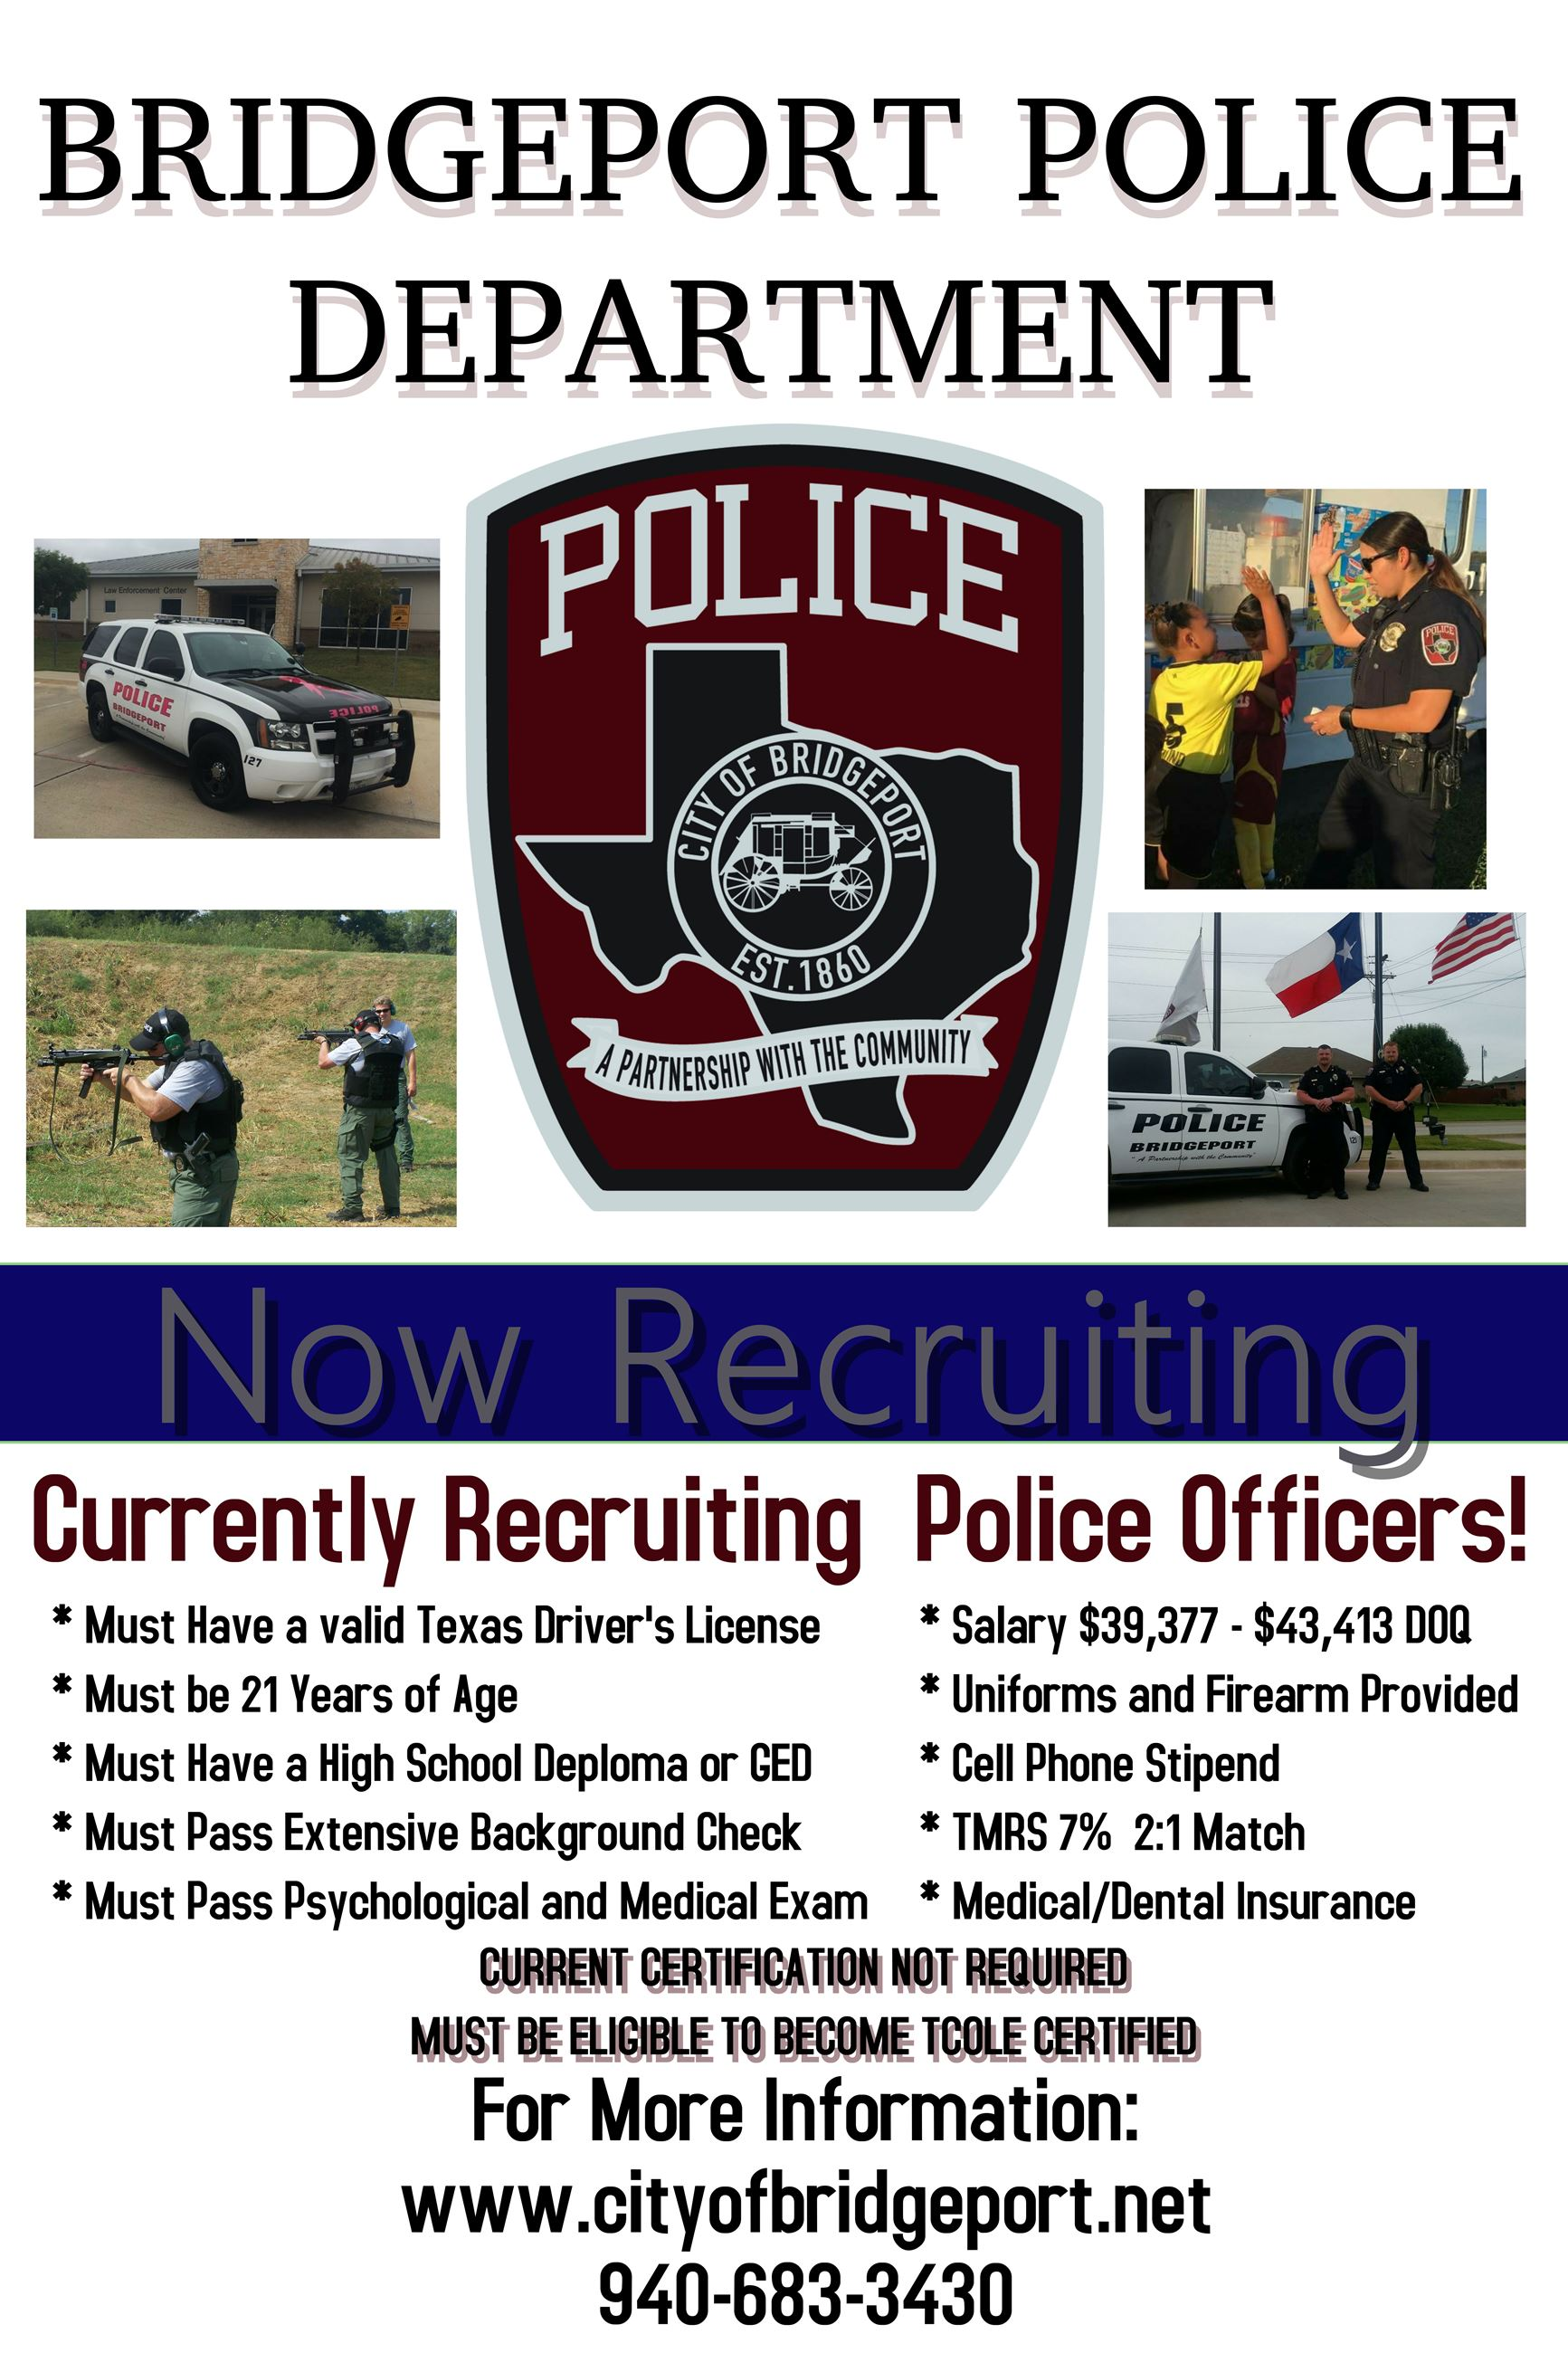 Recruitment Poster 02-2017